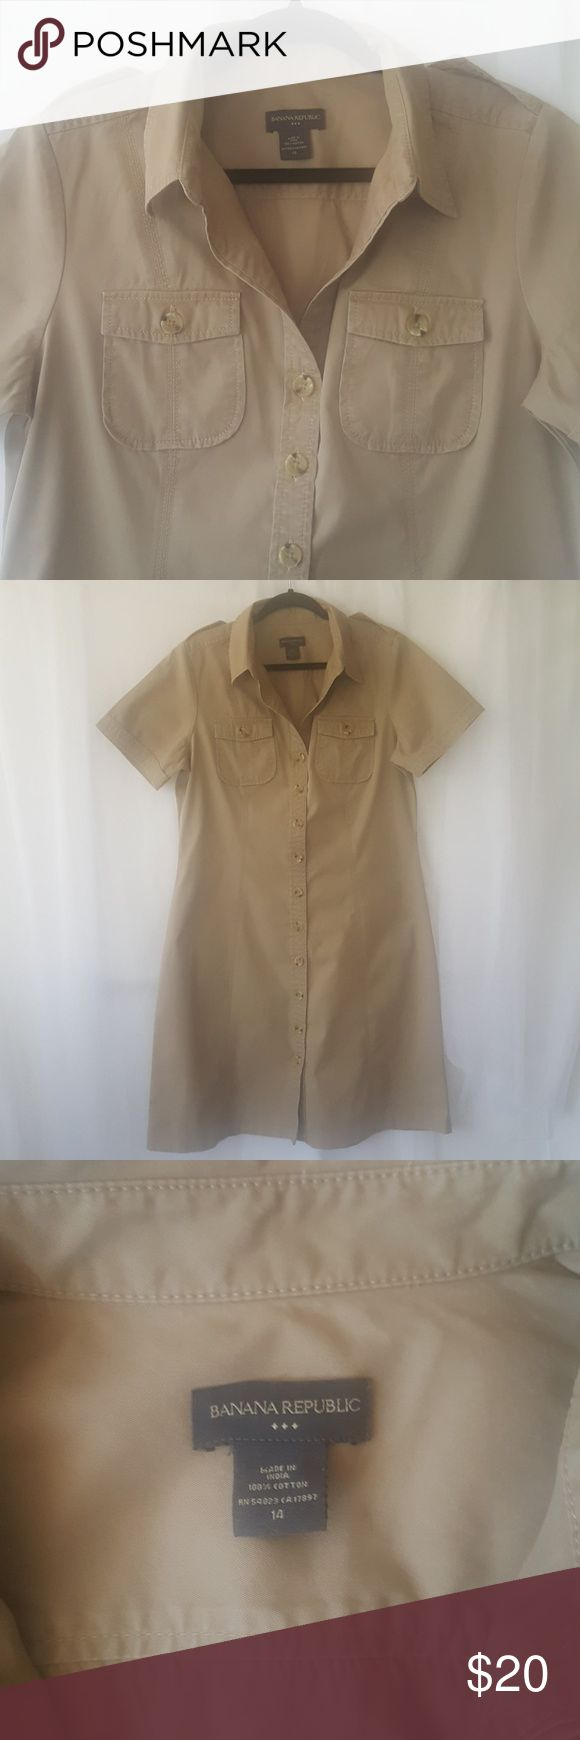 Banana Republic khaki safari dress sz 14 Banana Republic khaki safari button down dress  in excellent condition.  Please see photos for flat lay measurements. Thank you for checking! Do not forget to look at all other goodies I have in my closet. Happy Poshing!!! 😊🍉🎈♥️🎼 Banana Republic Dresses